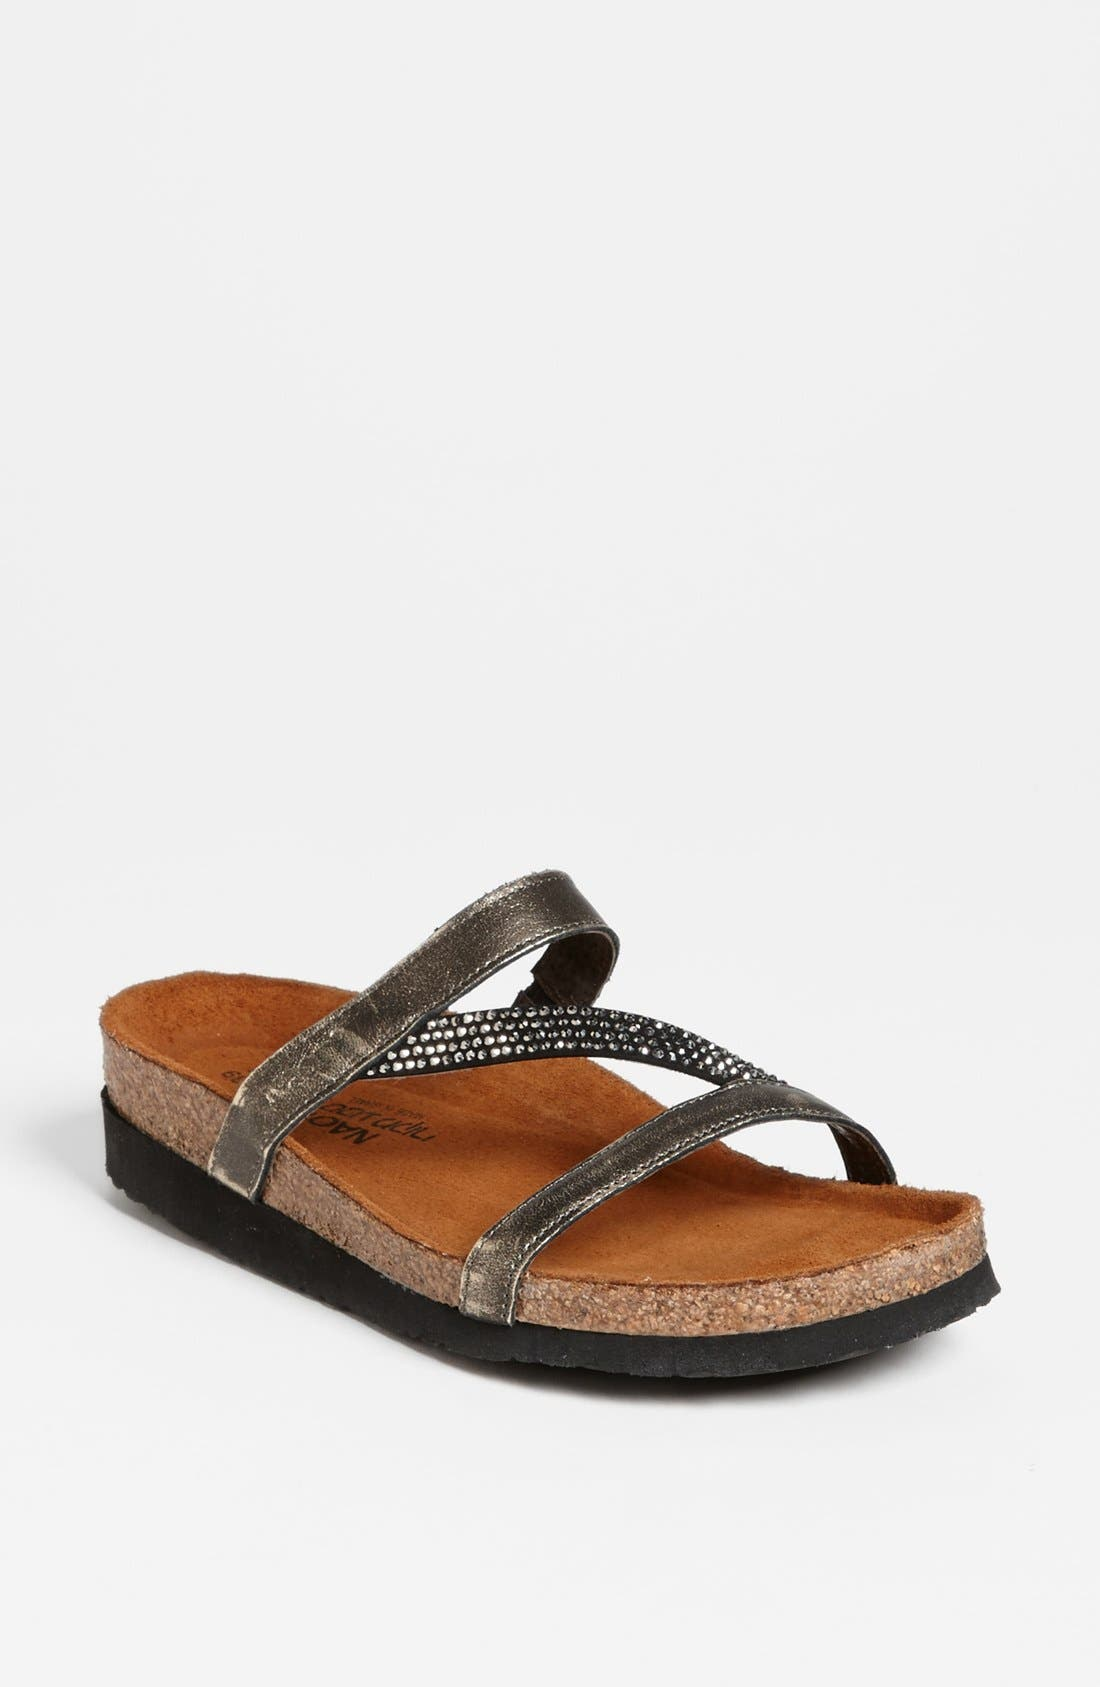 NAOT 'Hawaii' Sandal, Main, color, SILVER LEATHER